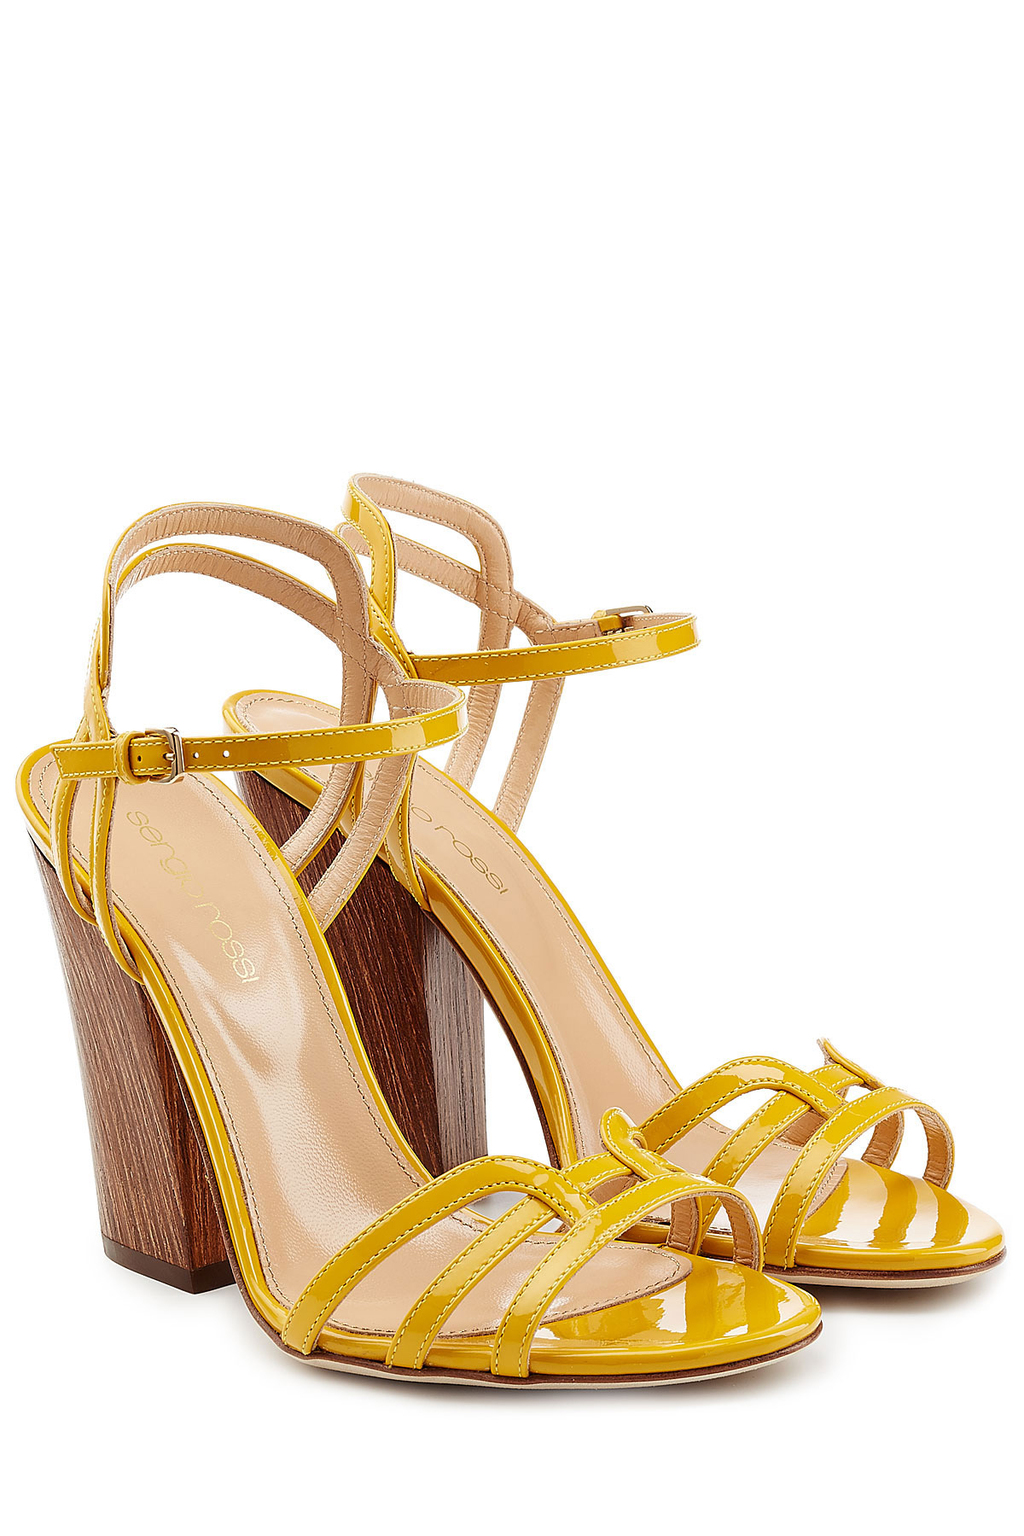 Patent Leather Sandals With Wooden Heel - predominant colour: yellow; occasions: evening; material: leather; heel height: high; heel: block; toe: open toe/peeptoe; style: strappy; finish: patent; pattern: plain; season: s/s 2016; wardrobe: event